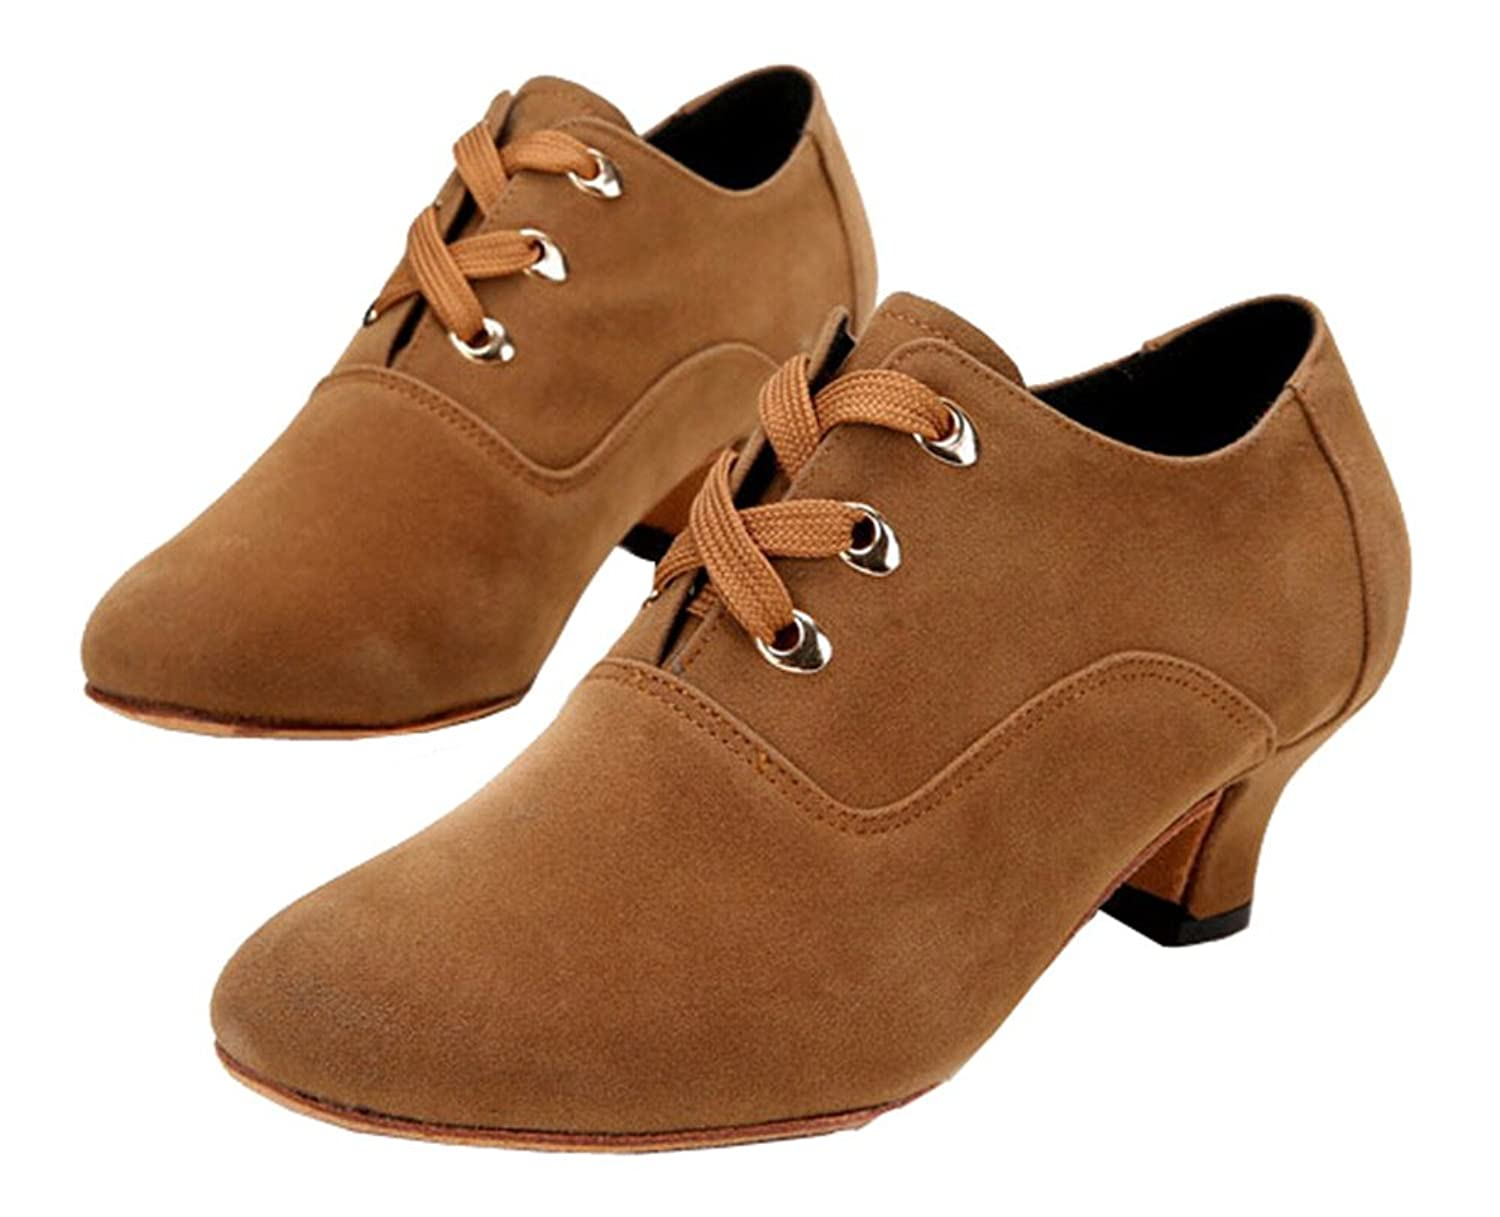 DIY Dance Shoes- Ballroom, Lindy, Swing Womens Modern Practice Social Dance Shoes Ankle Jazz Boots Lace-up $33.50 AT vintagedancer.com